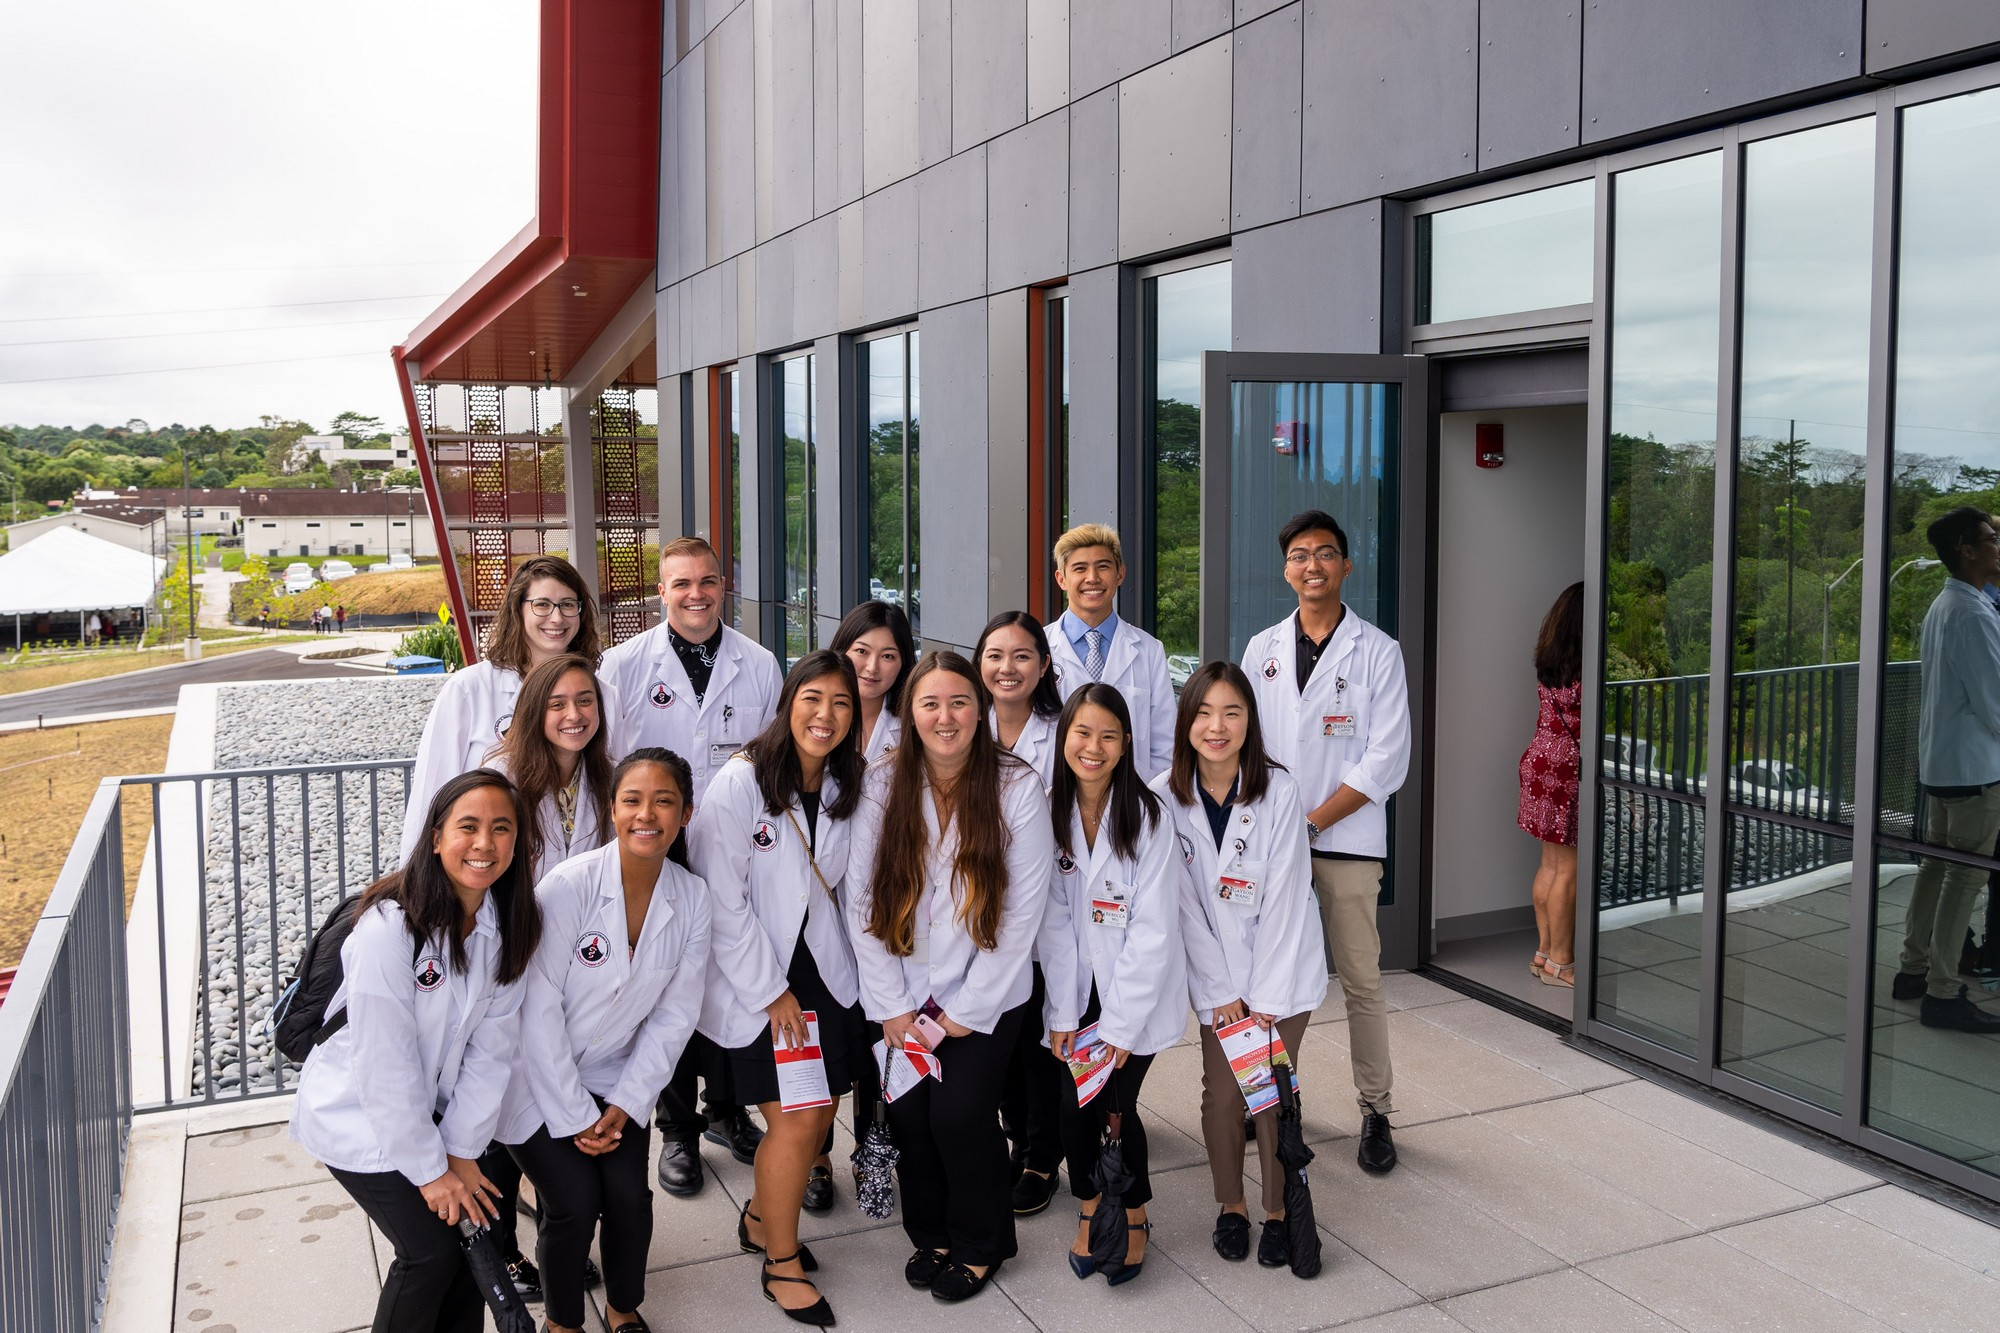 Group of pharmacy students in their white coats pose for photo on lanai of new building.